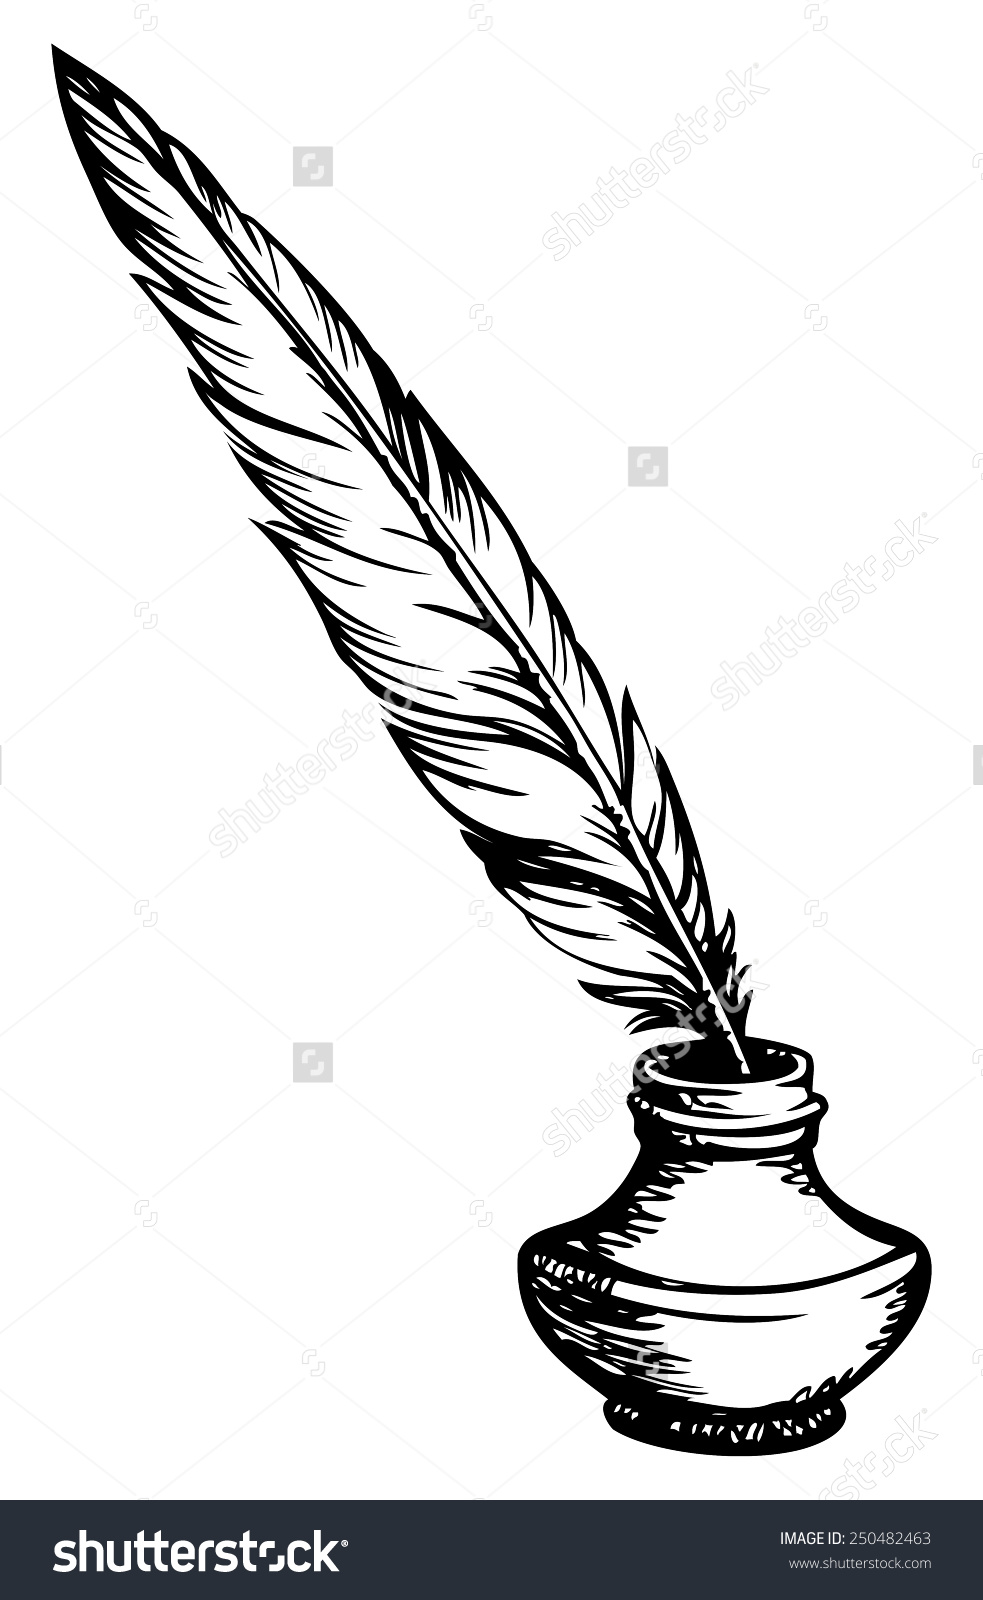 Goose Feather Elegant Oldfashioned Decorative Inkpot Stock Vector.